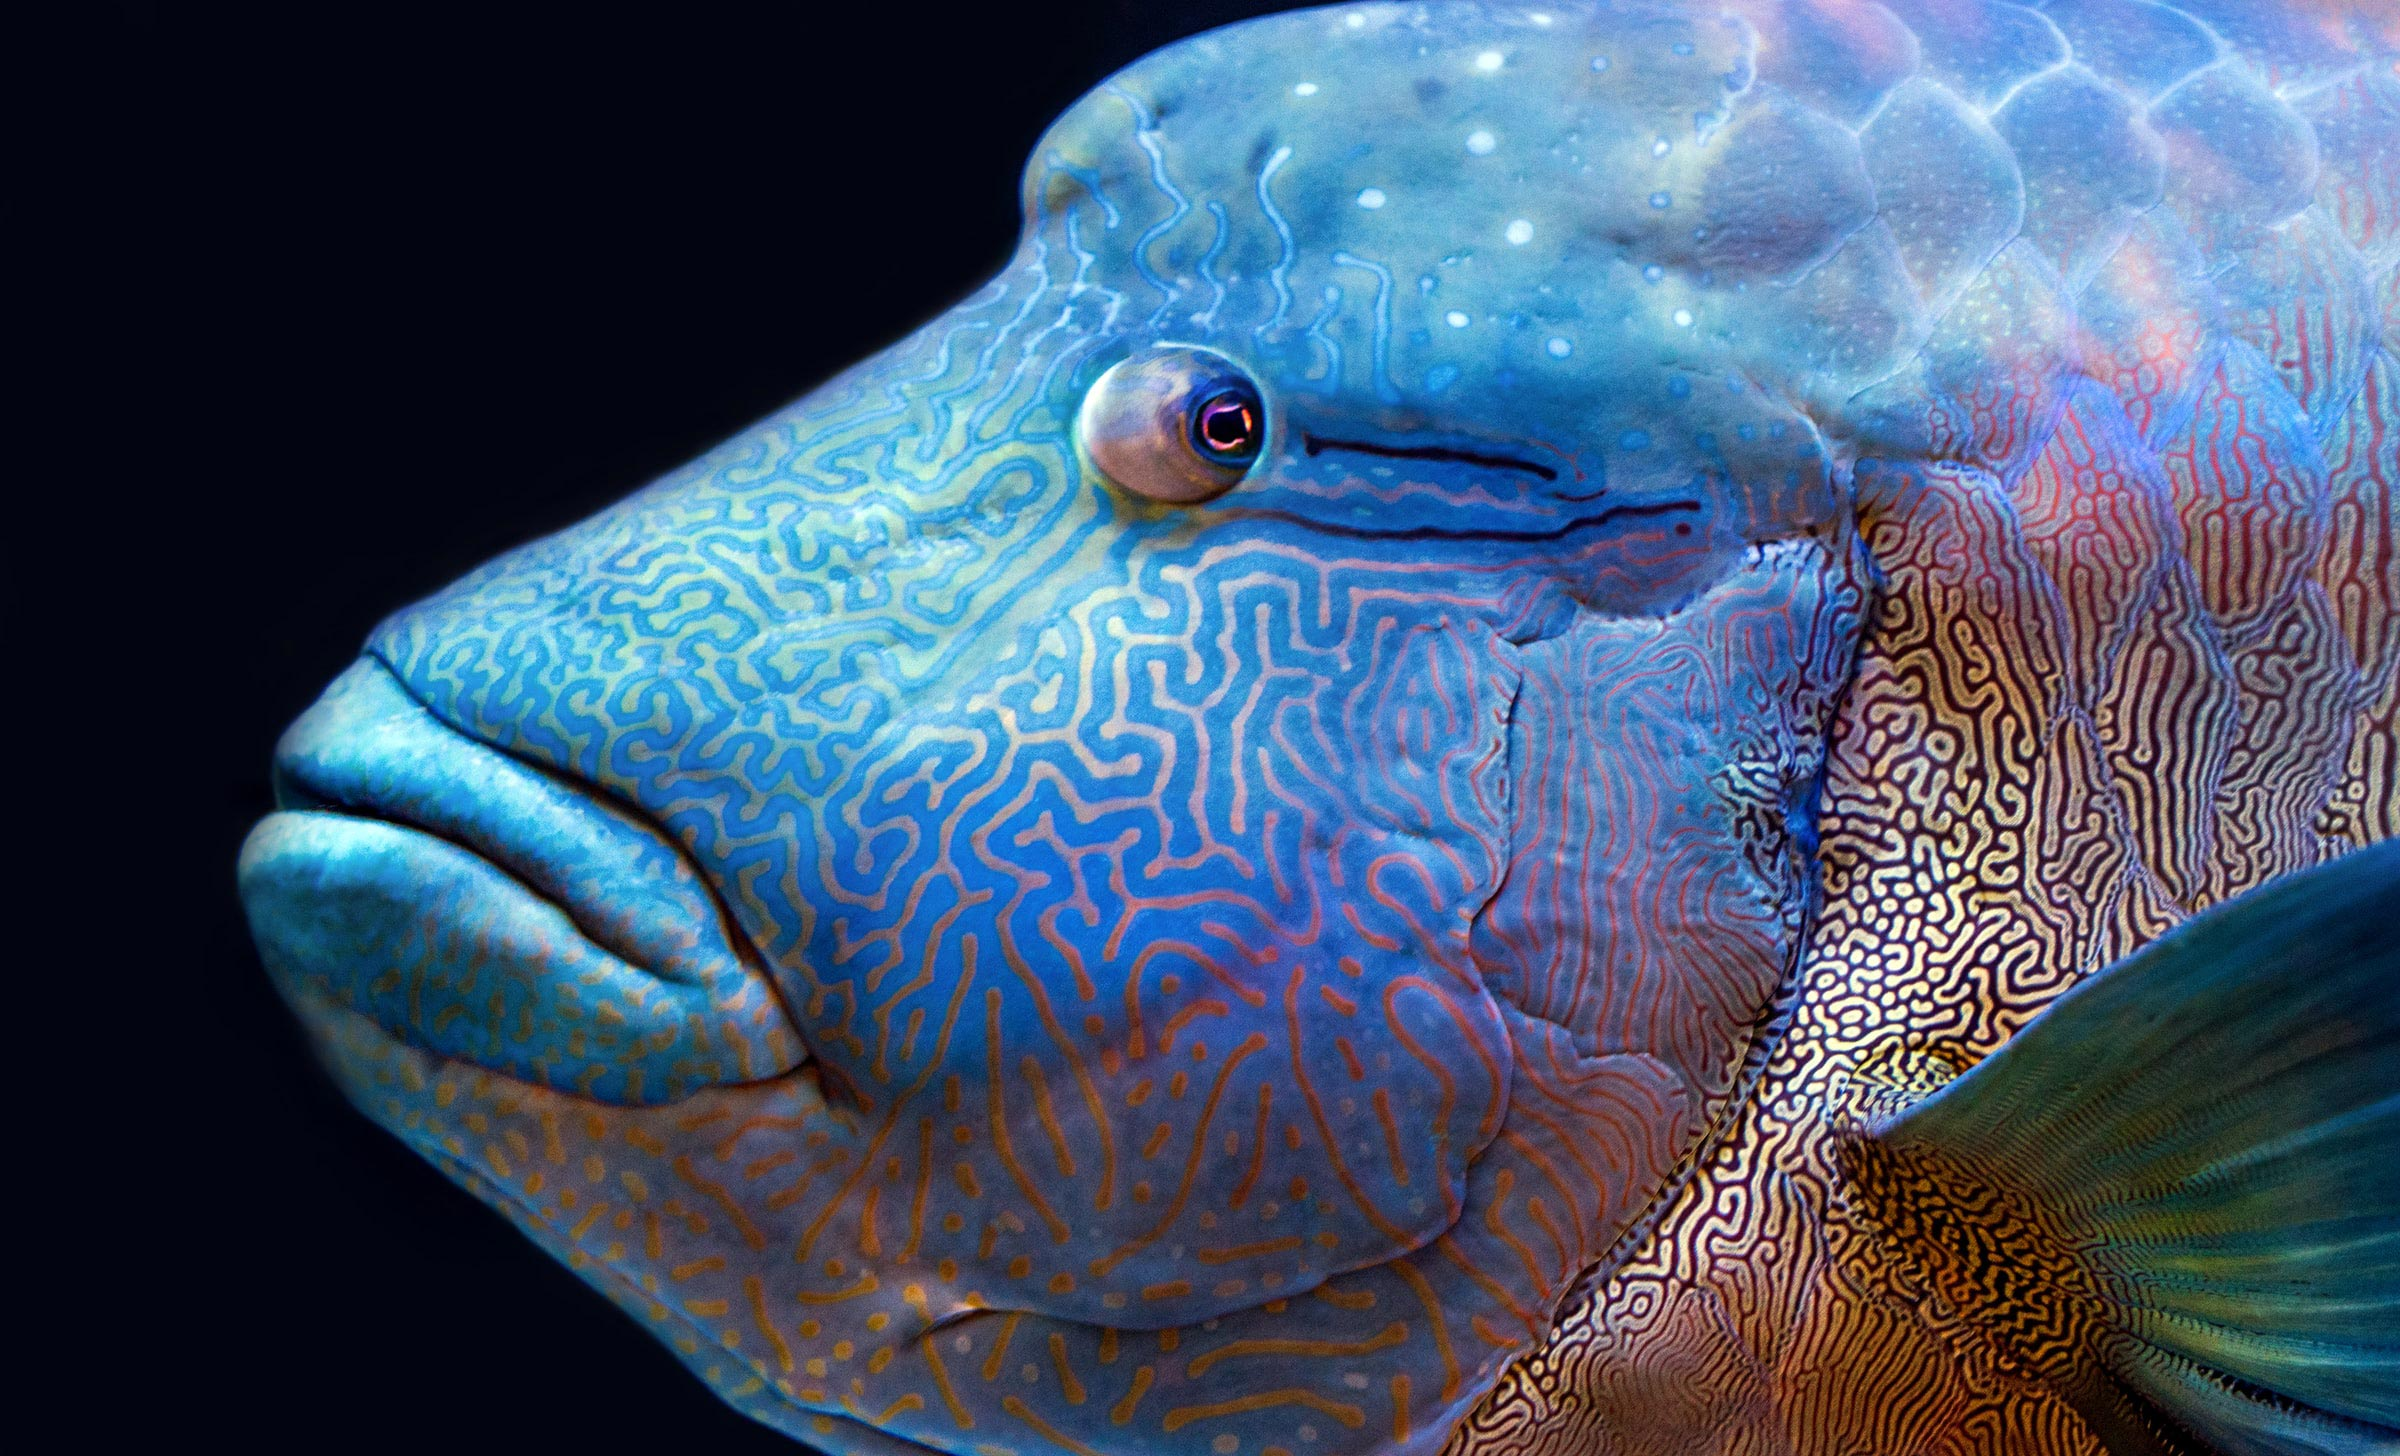 Innovative Genetic Analysis Unlocks Clues to the Evolution and Survival of the Great Barrier Reef